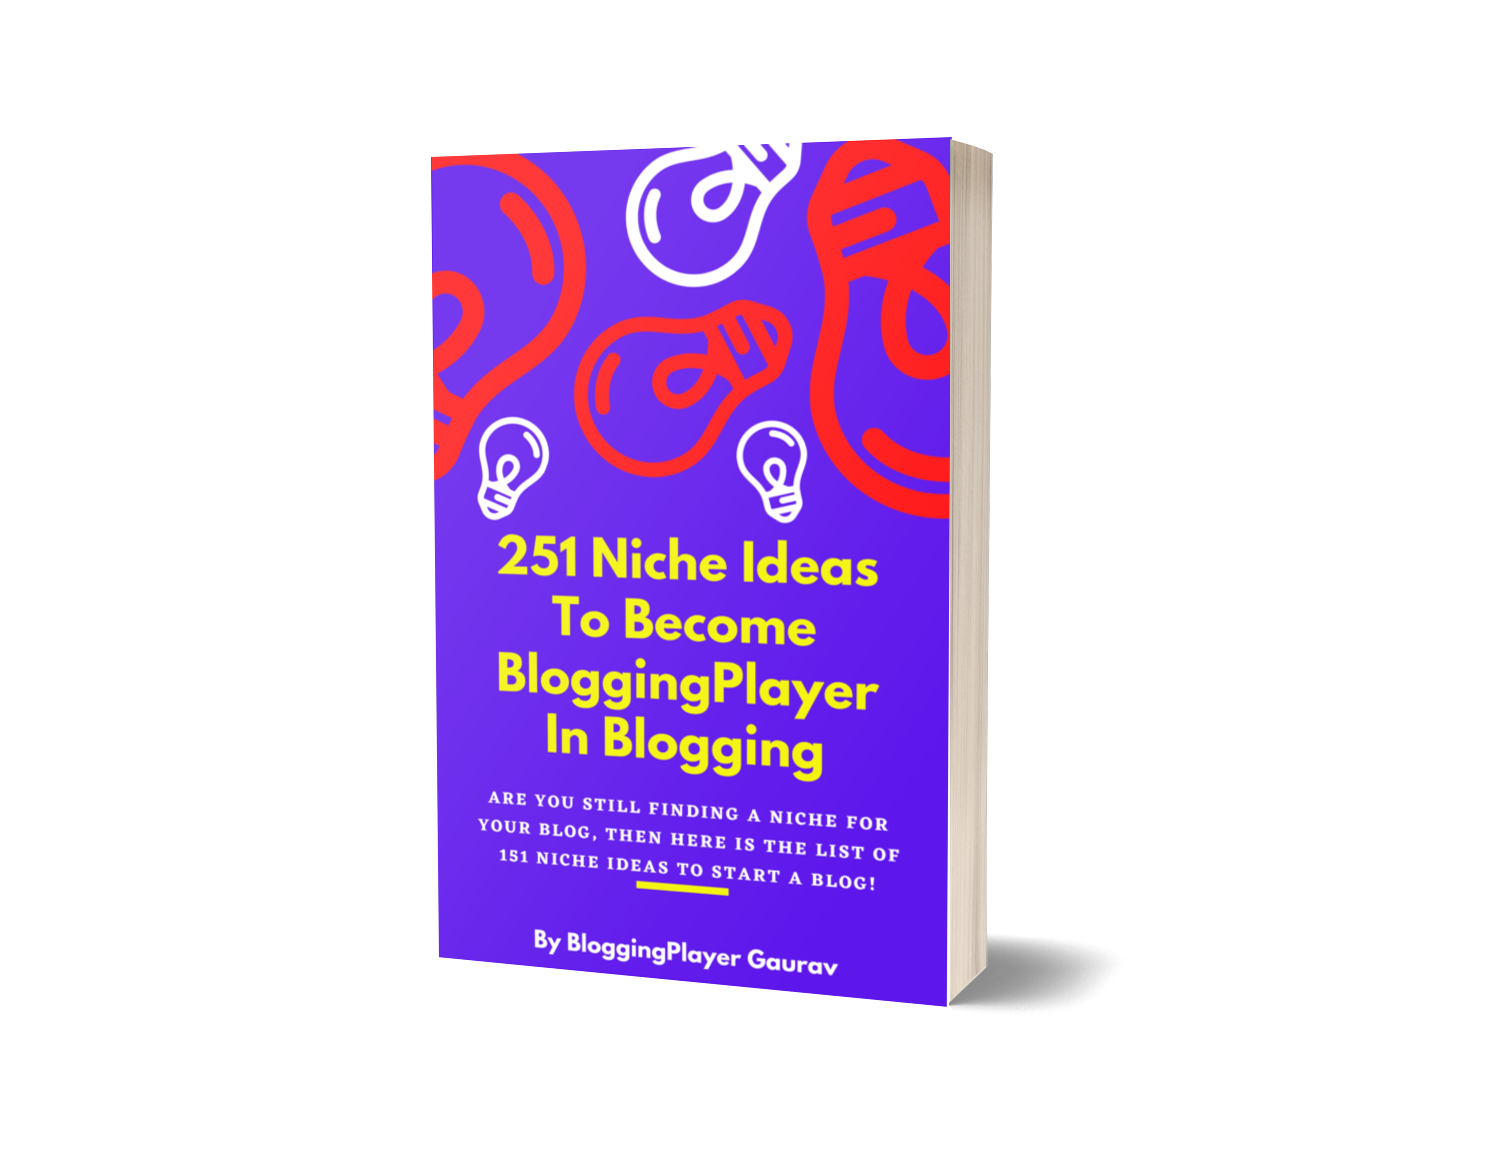 251 Plus Niche Ideas To Become Better BloggingPlayer in Blogging